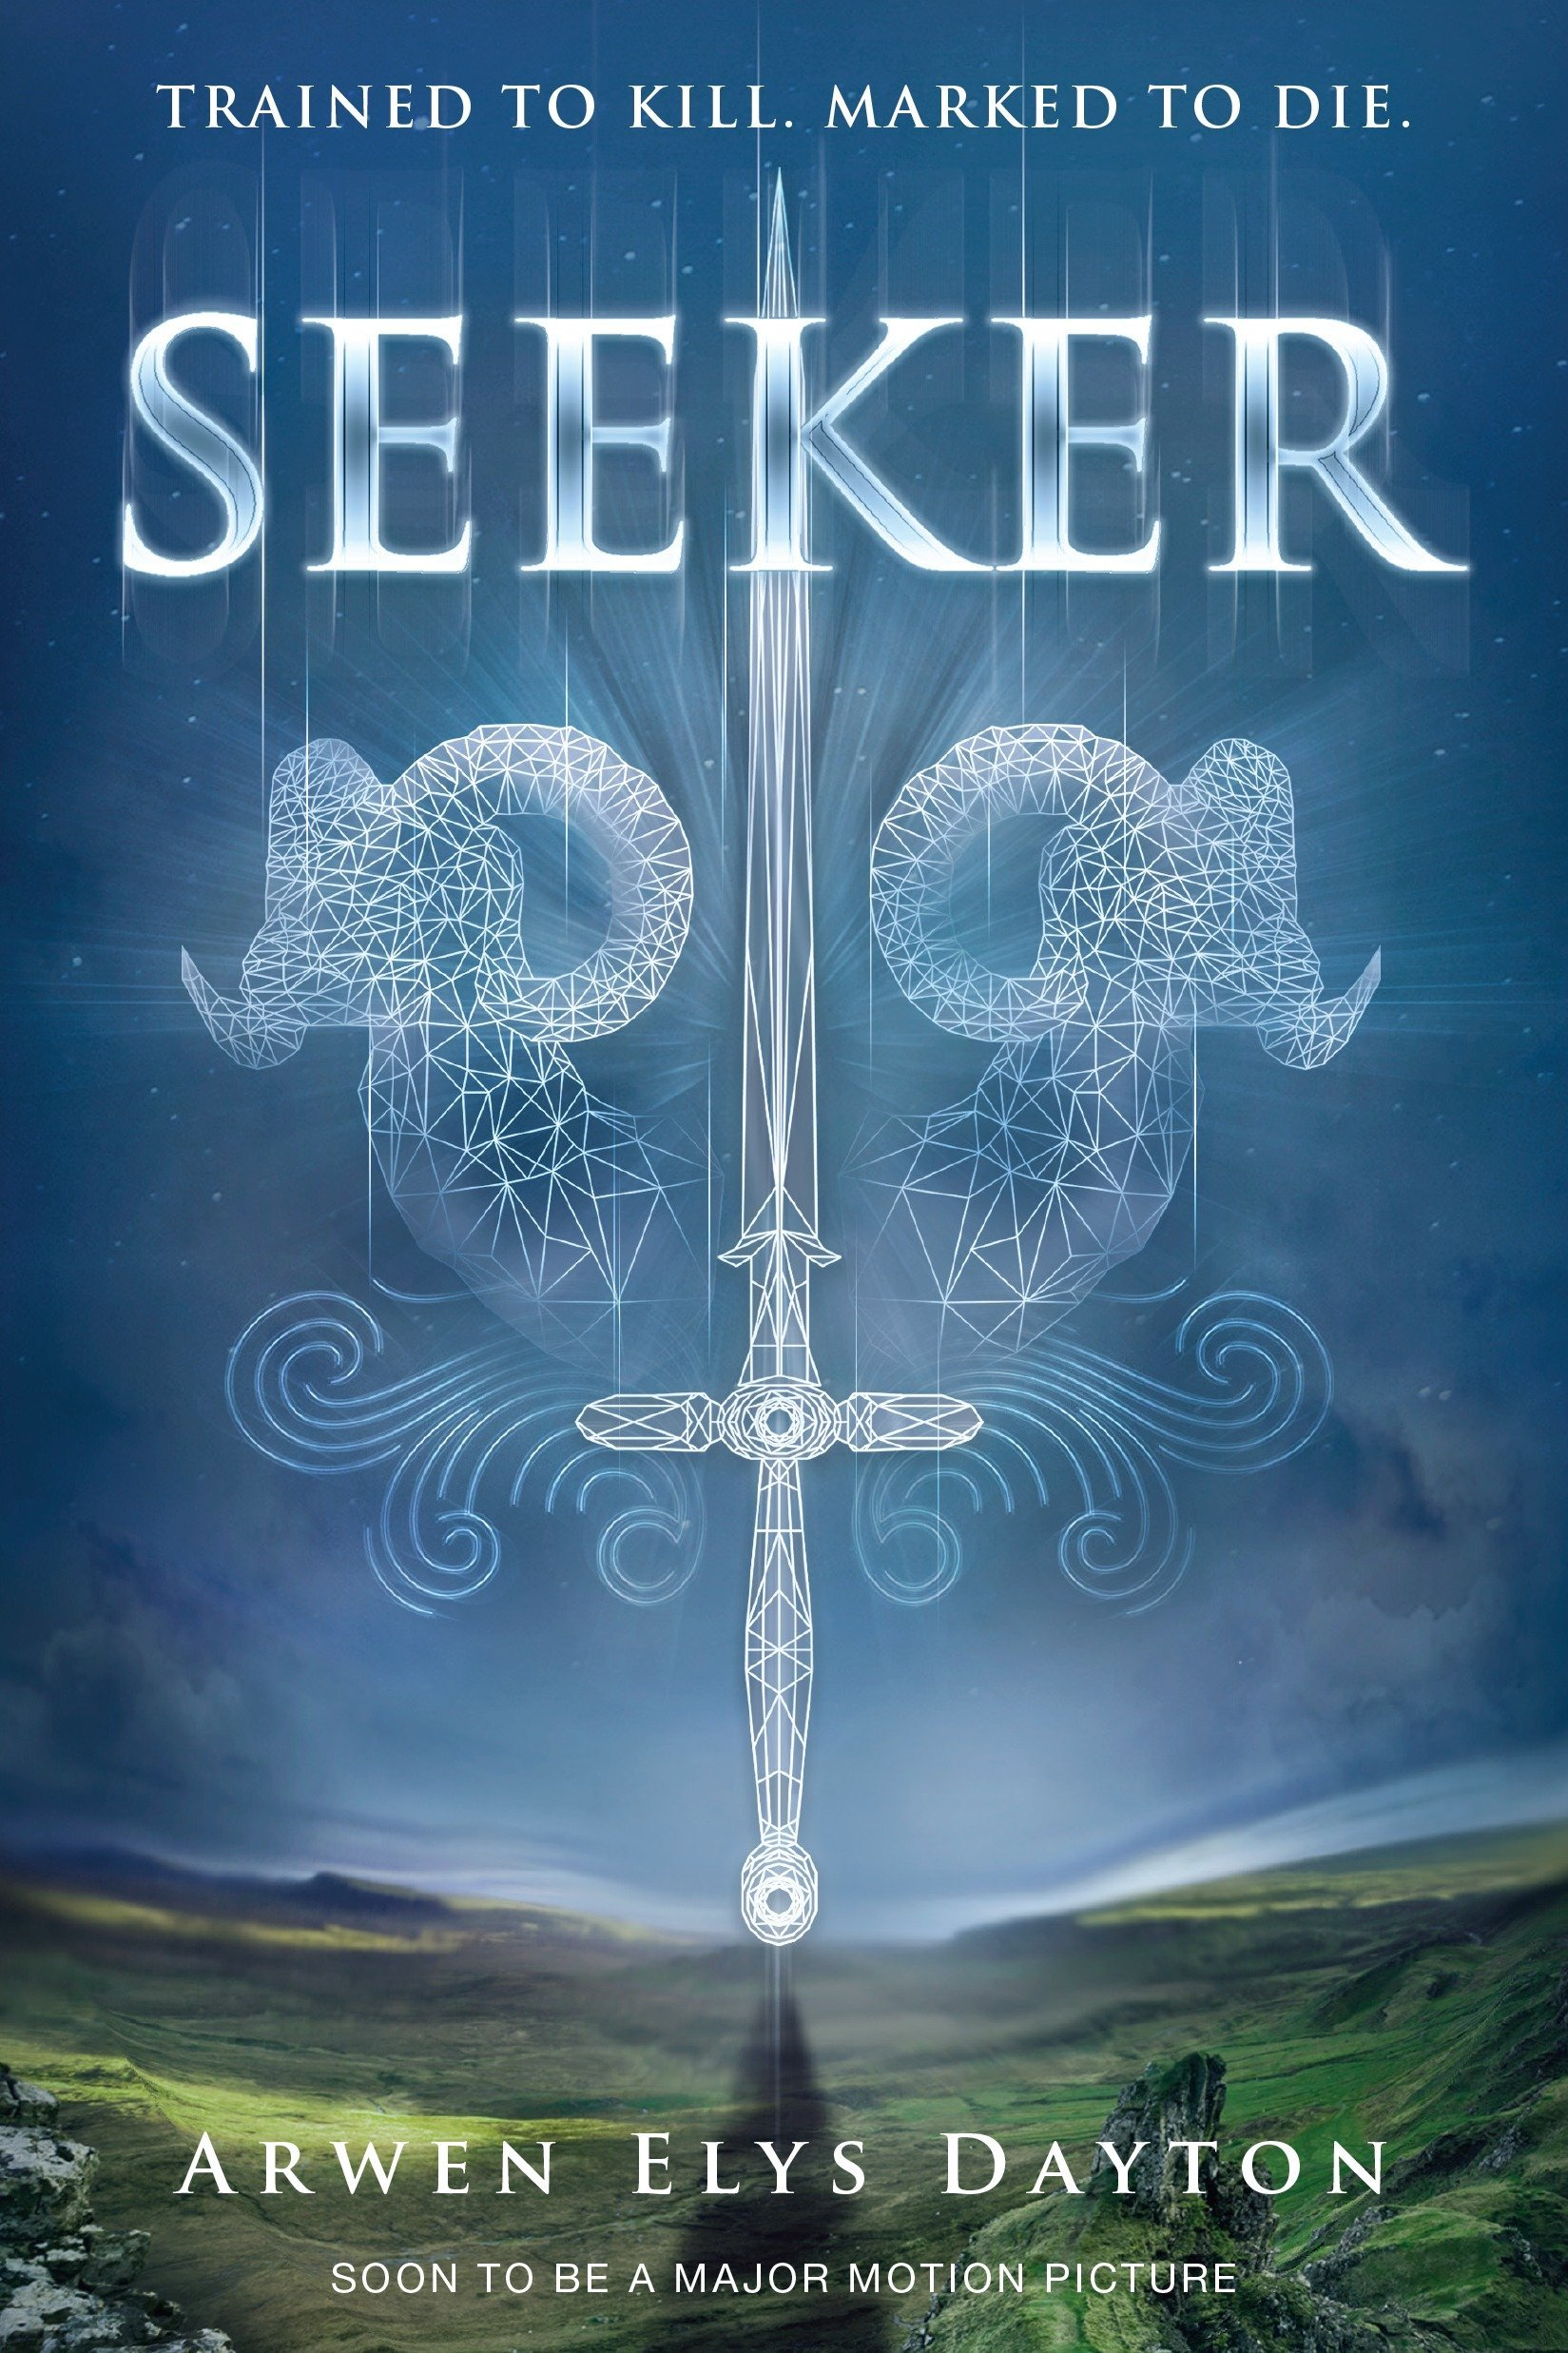 amazon com seeker 9780385744089 arwen elys dayton books